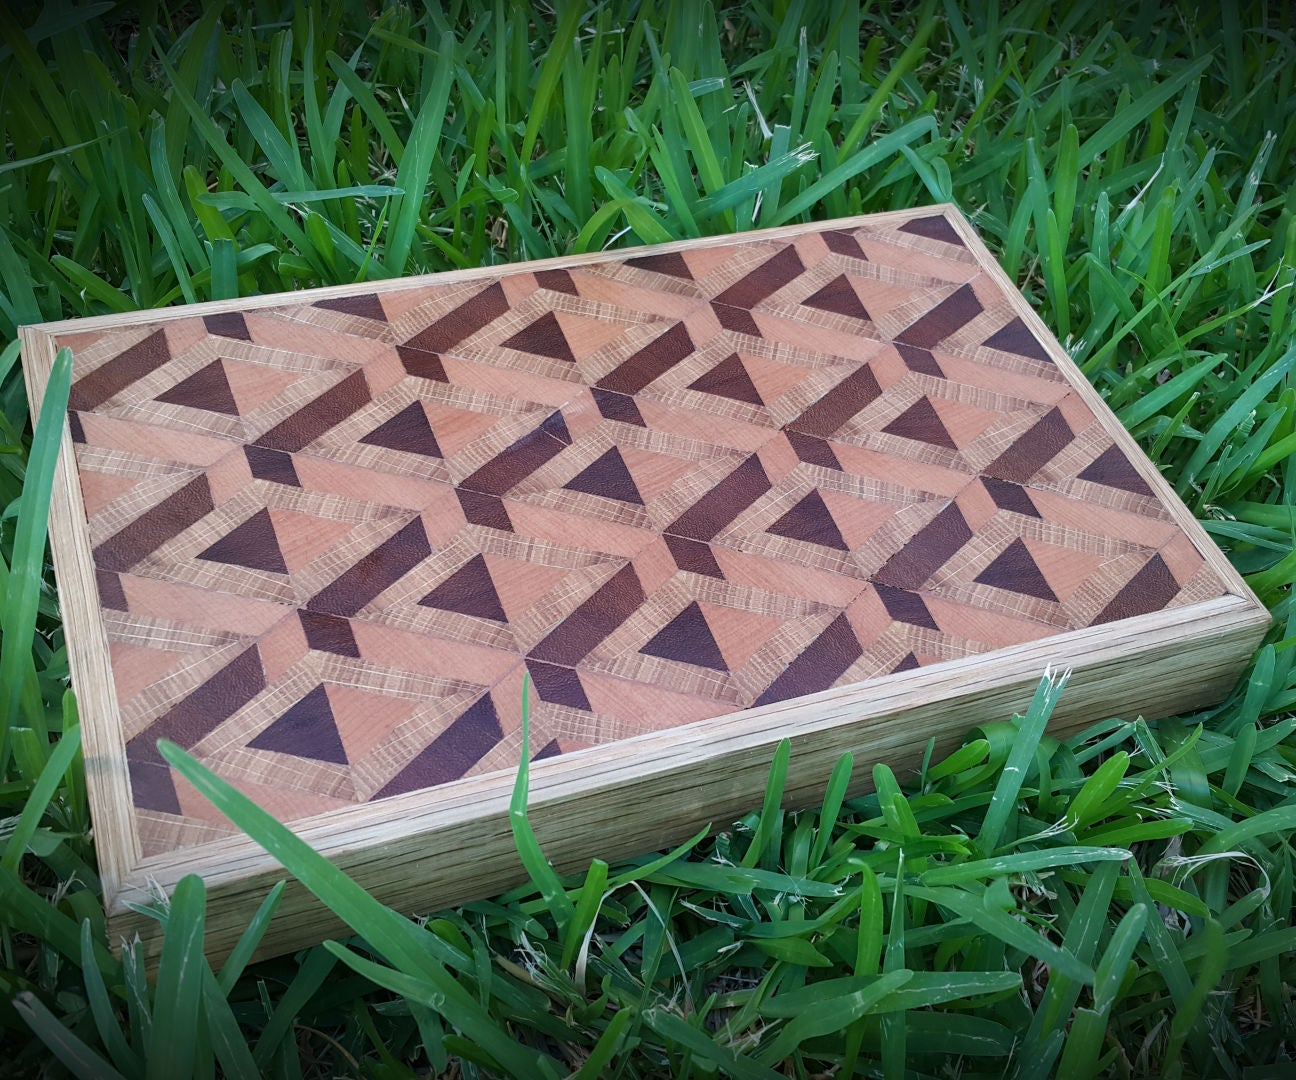 3D End Grain Cutting Board: 9 Steps (with Pictures